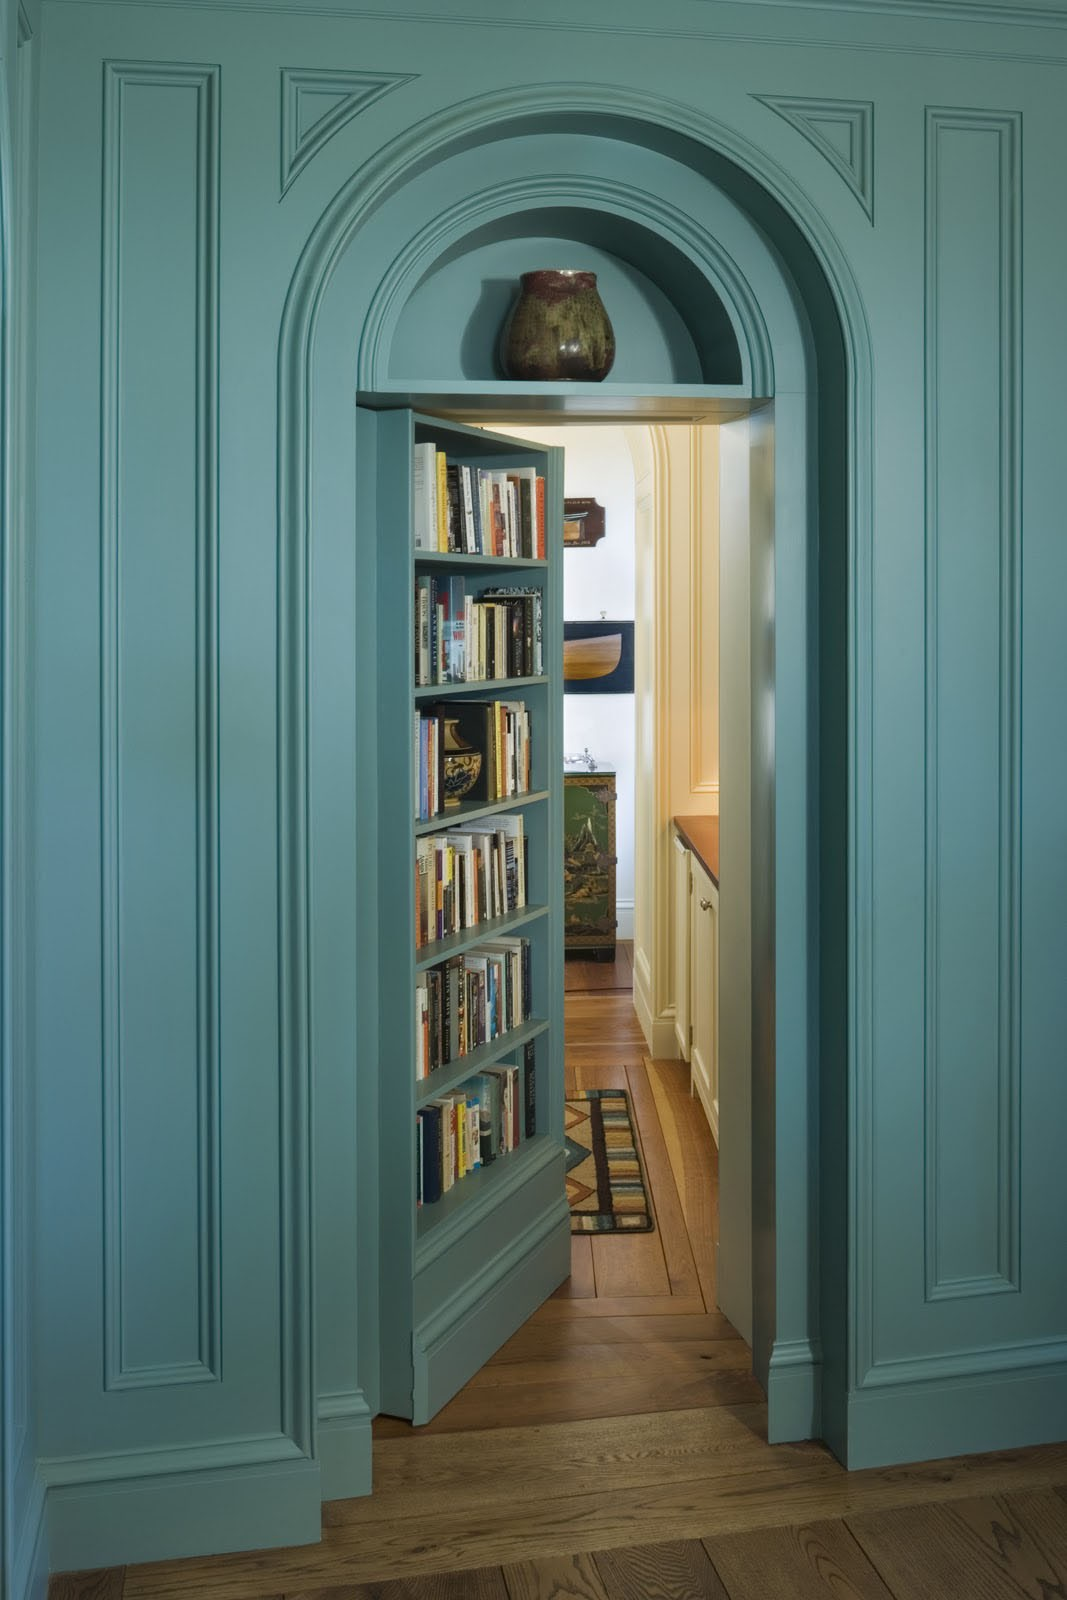 10 Creative Bookshelf Ideas You Ll Want To Try At Home